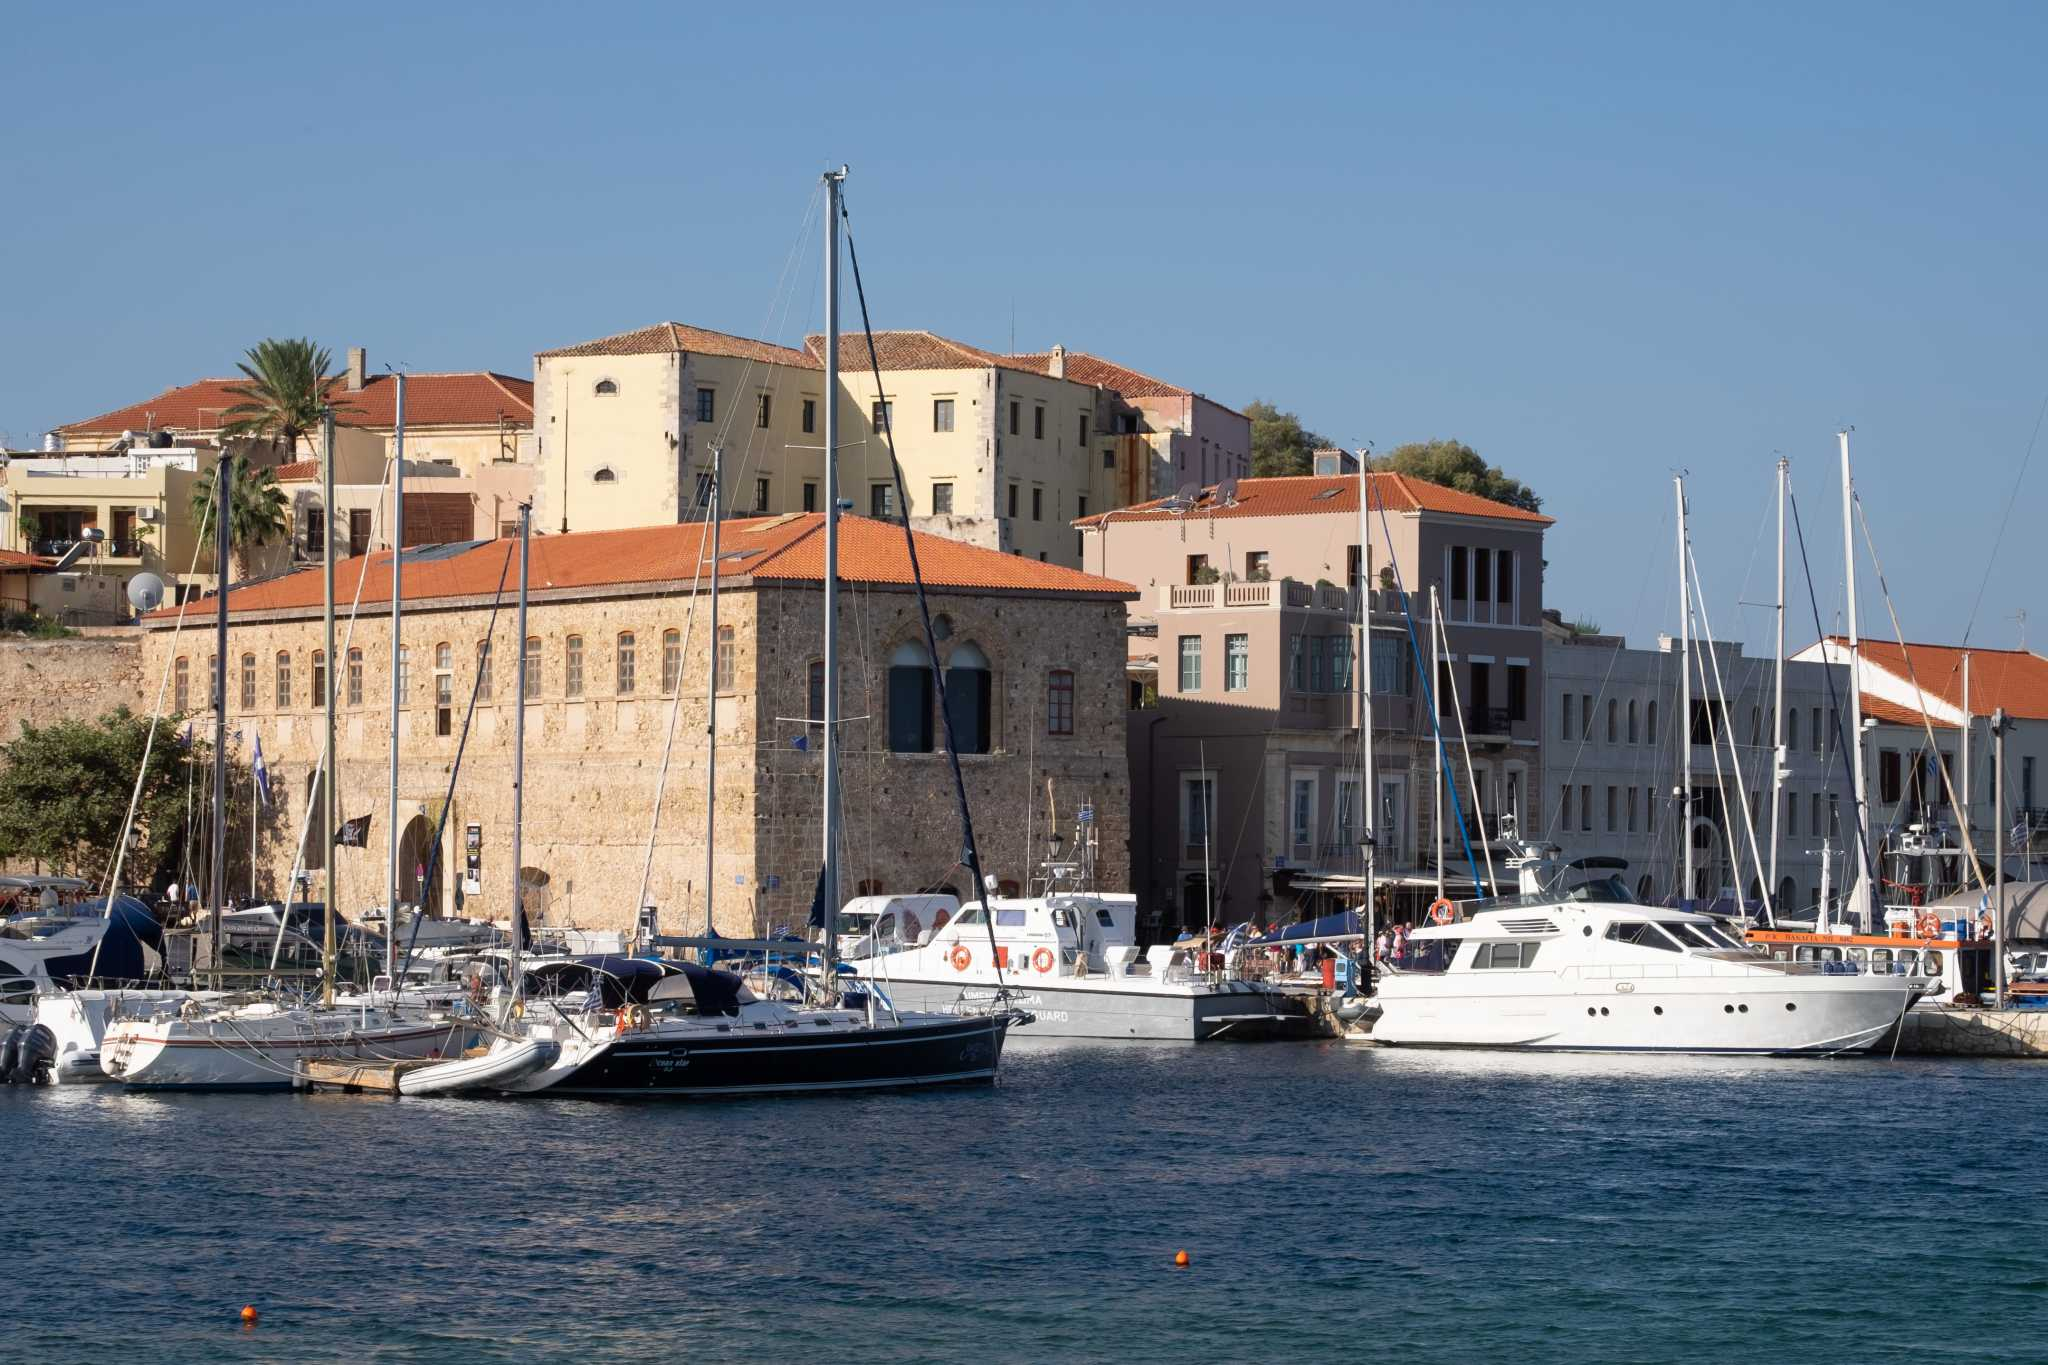 Grand Arsenal Chania